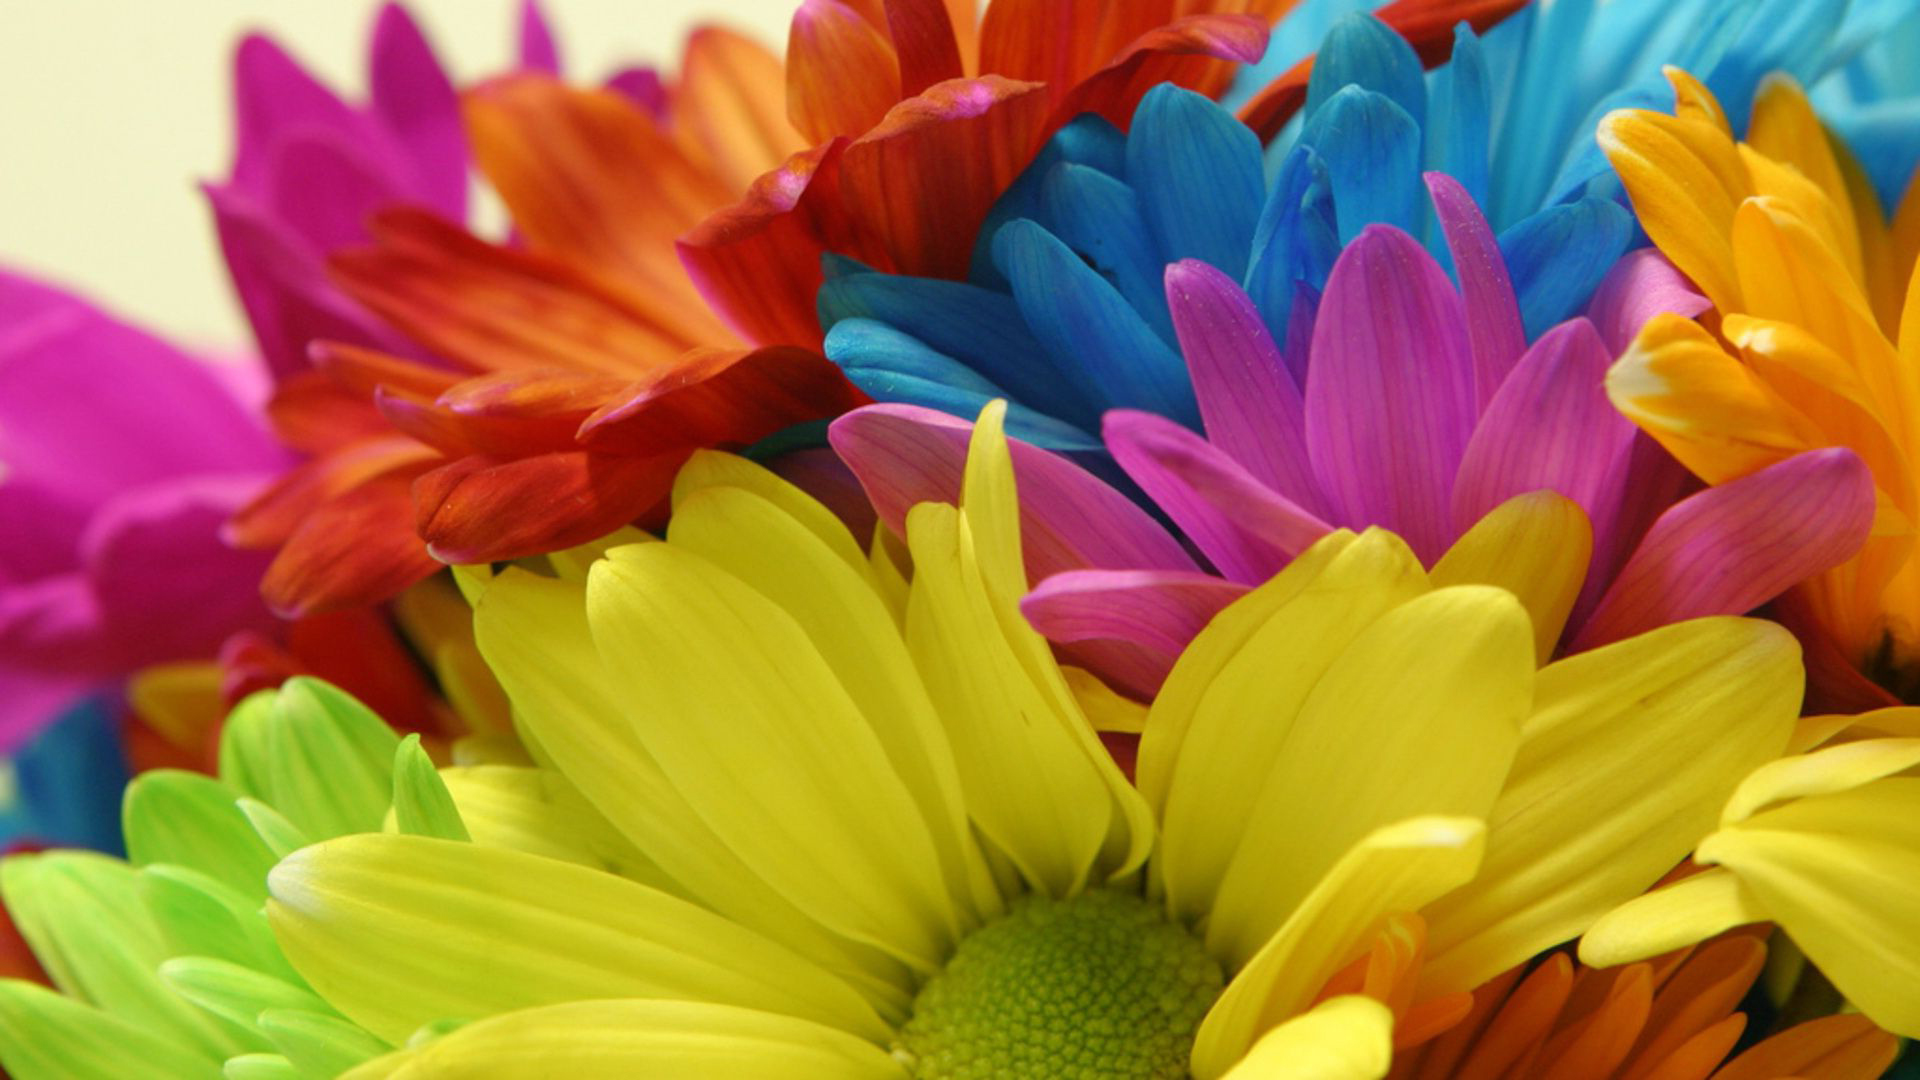 Colored Daisy Flower Images Free as Best HD Wallpapers for Laptop 1080p